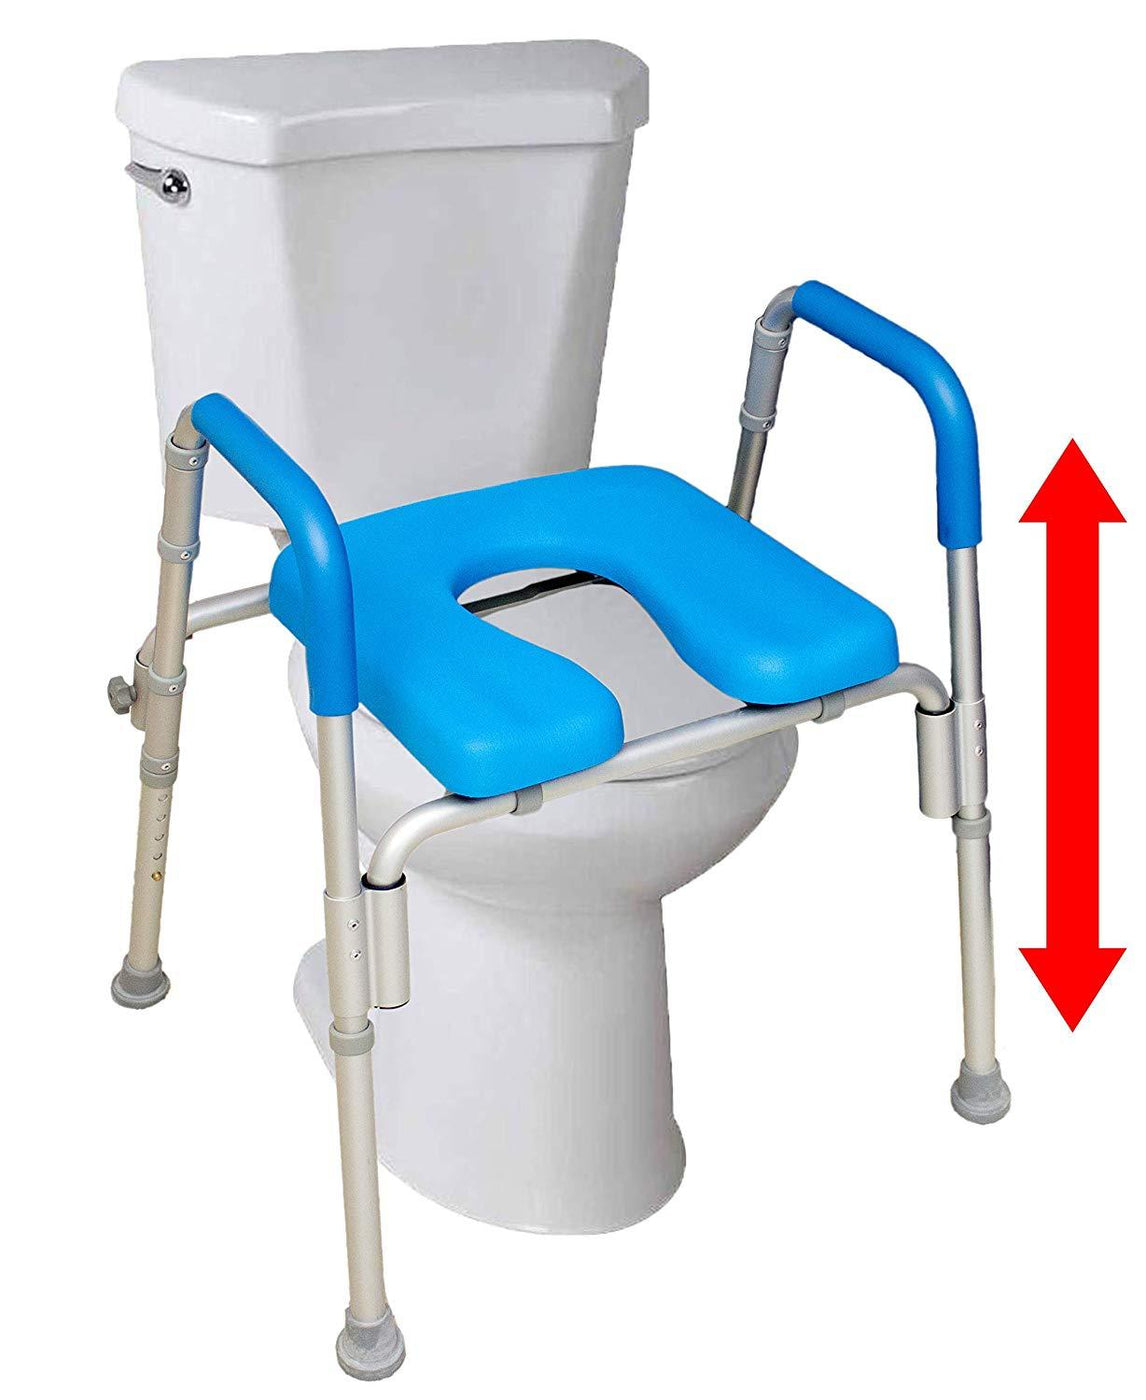 THE ULTIMATE™ RAISED TOILET SEAT - height adjustable